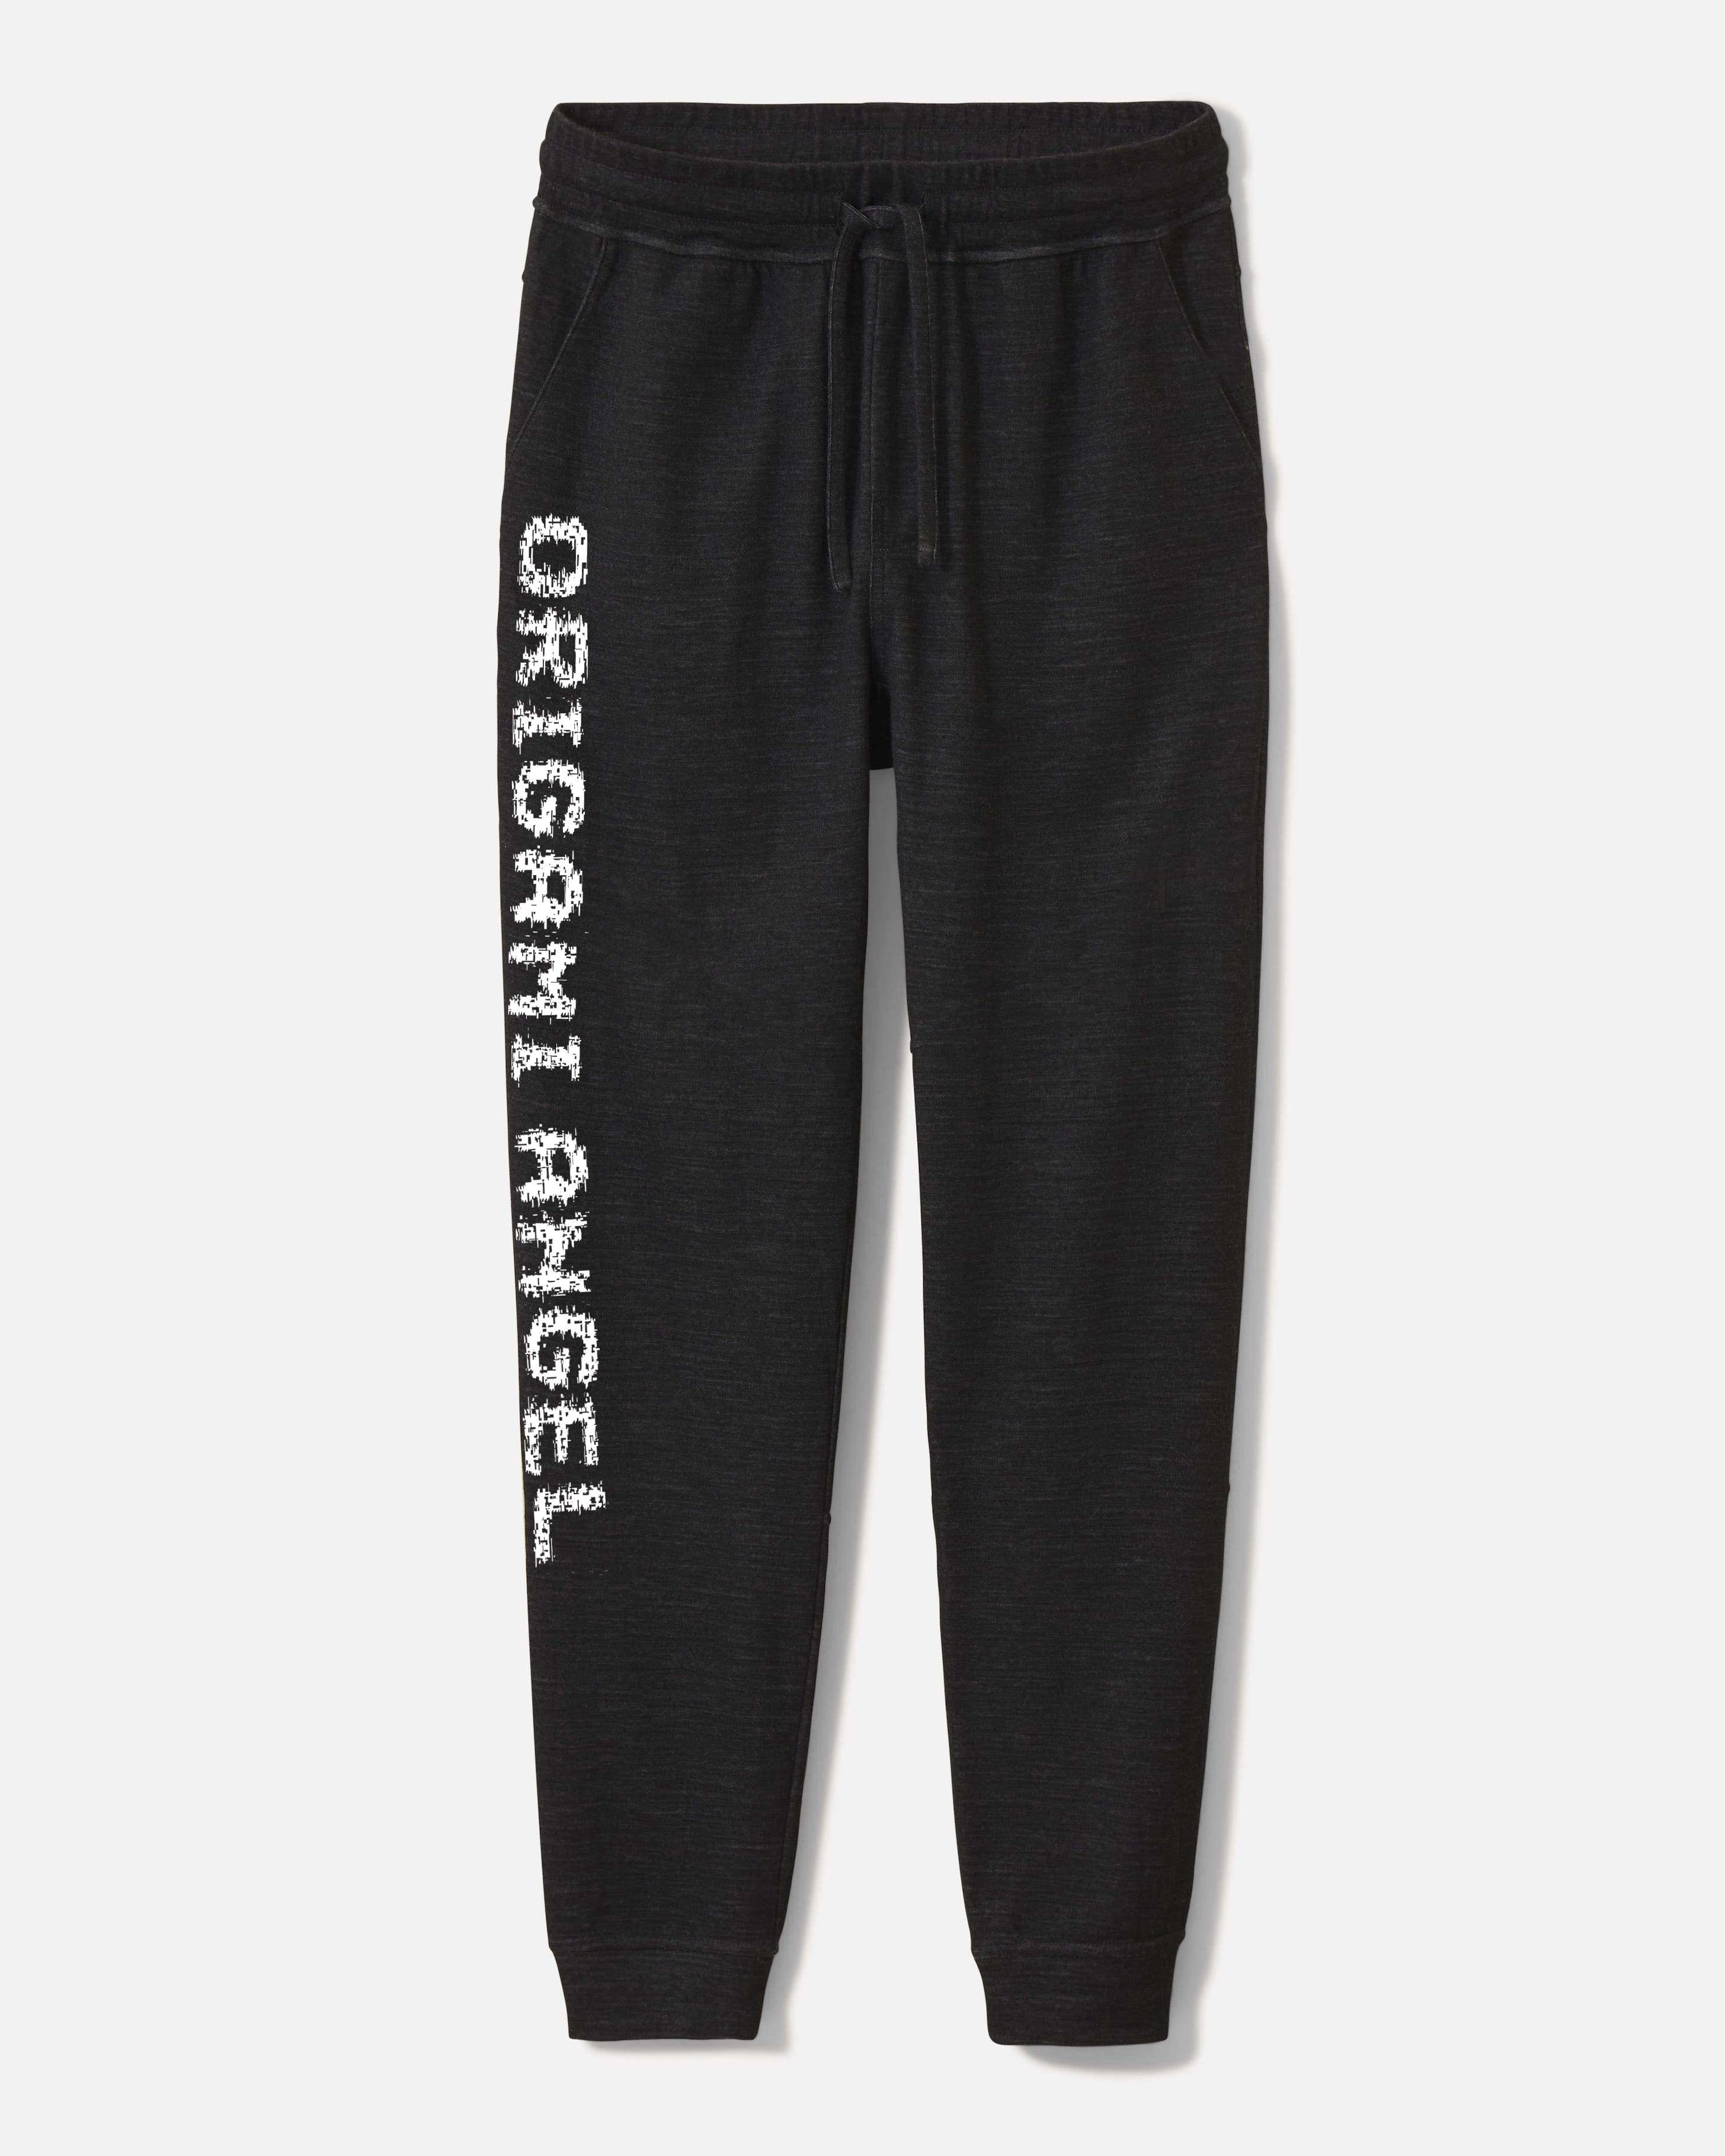 ORIGAMI SWEATPANTS